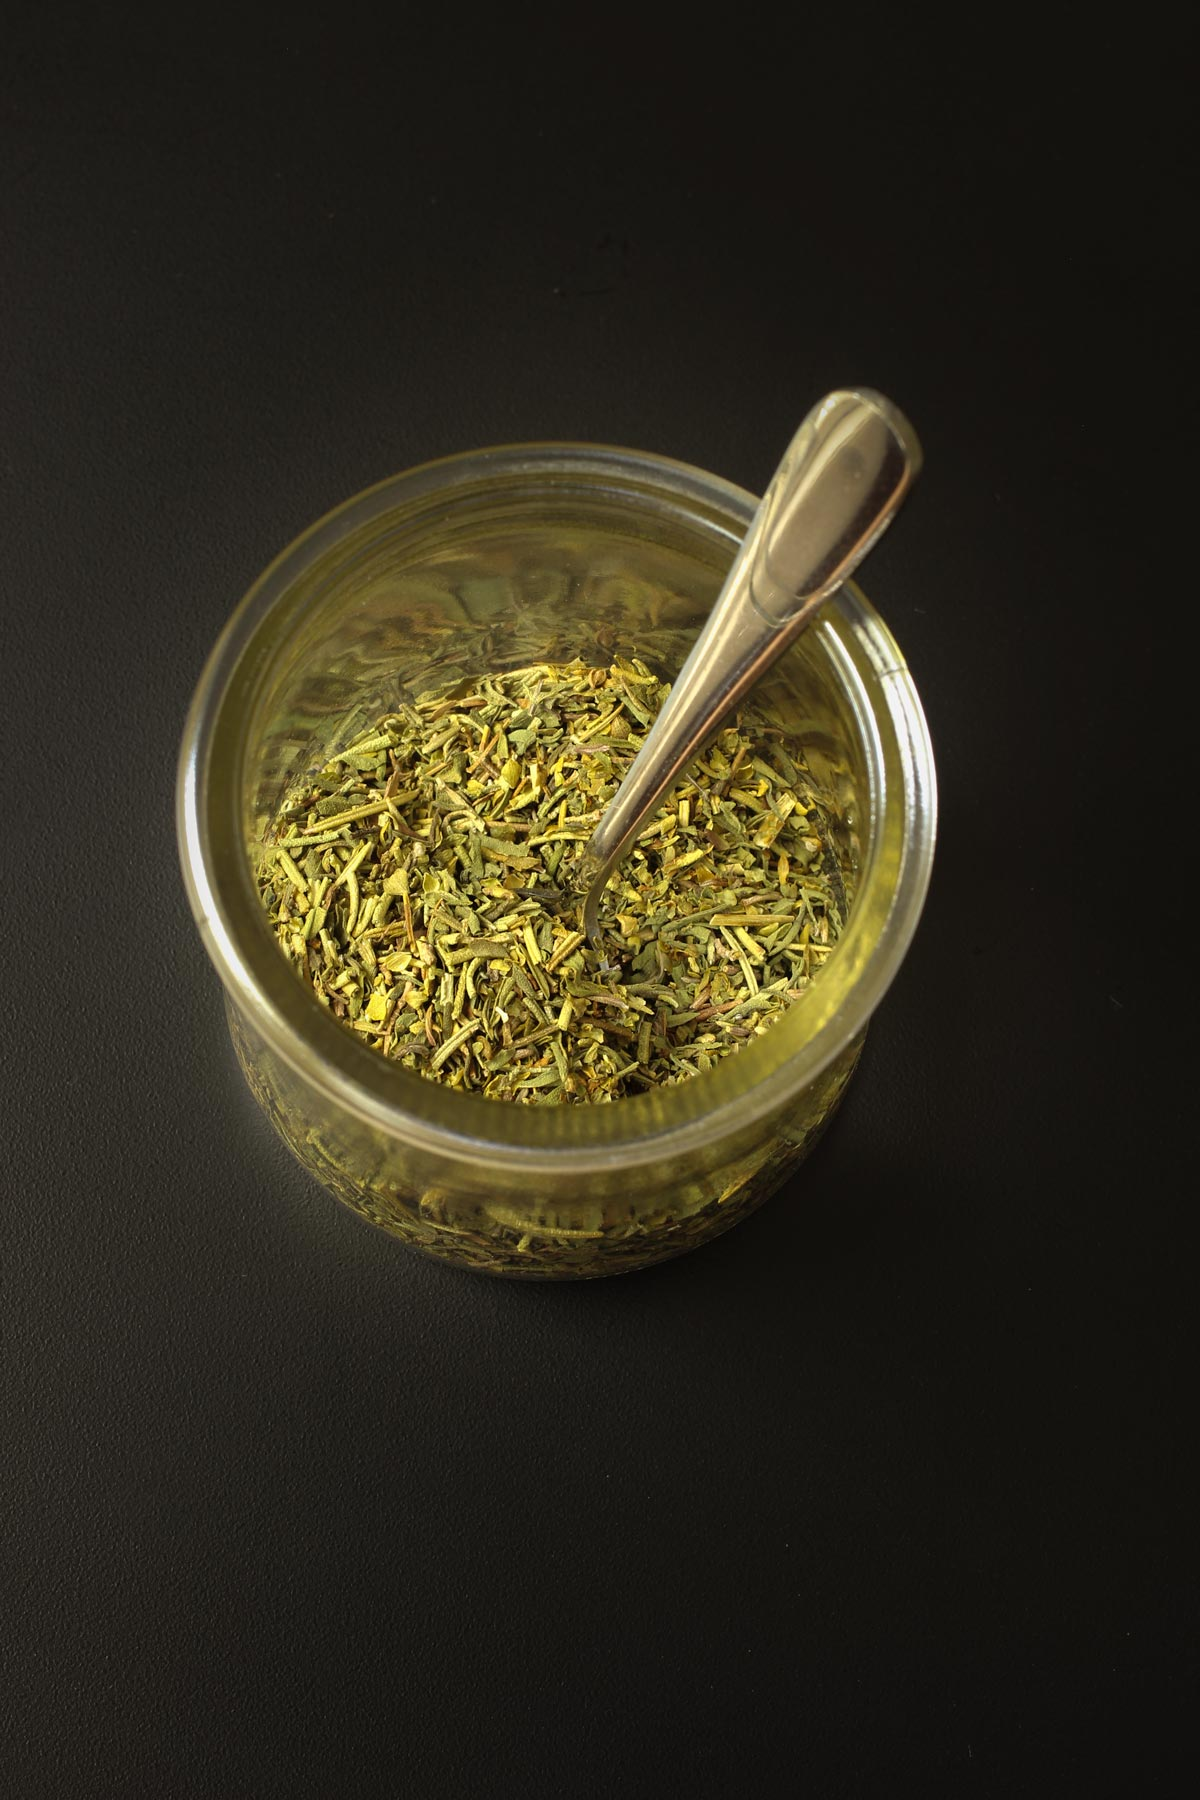 small spoon in glass dish of herbes for mixing the blend.